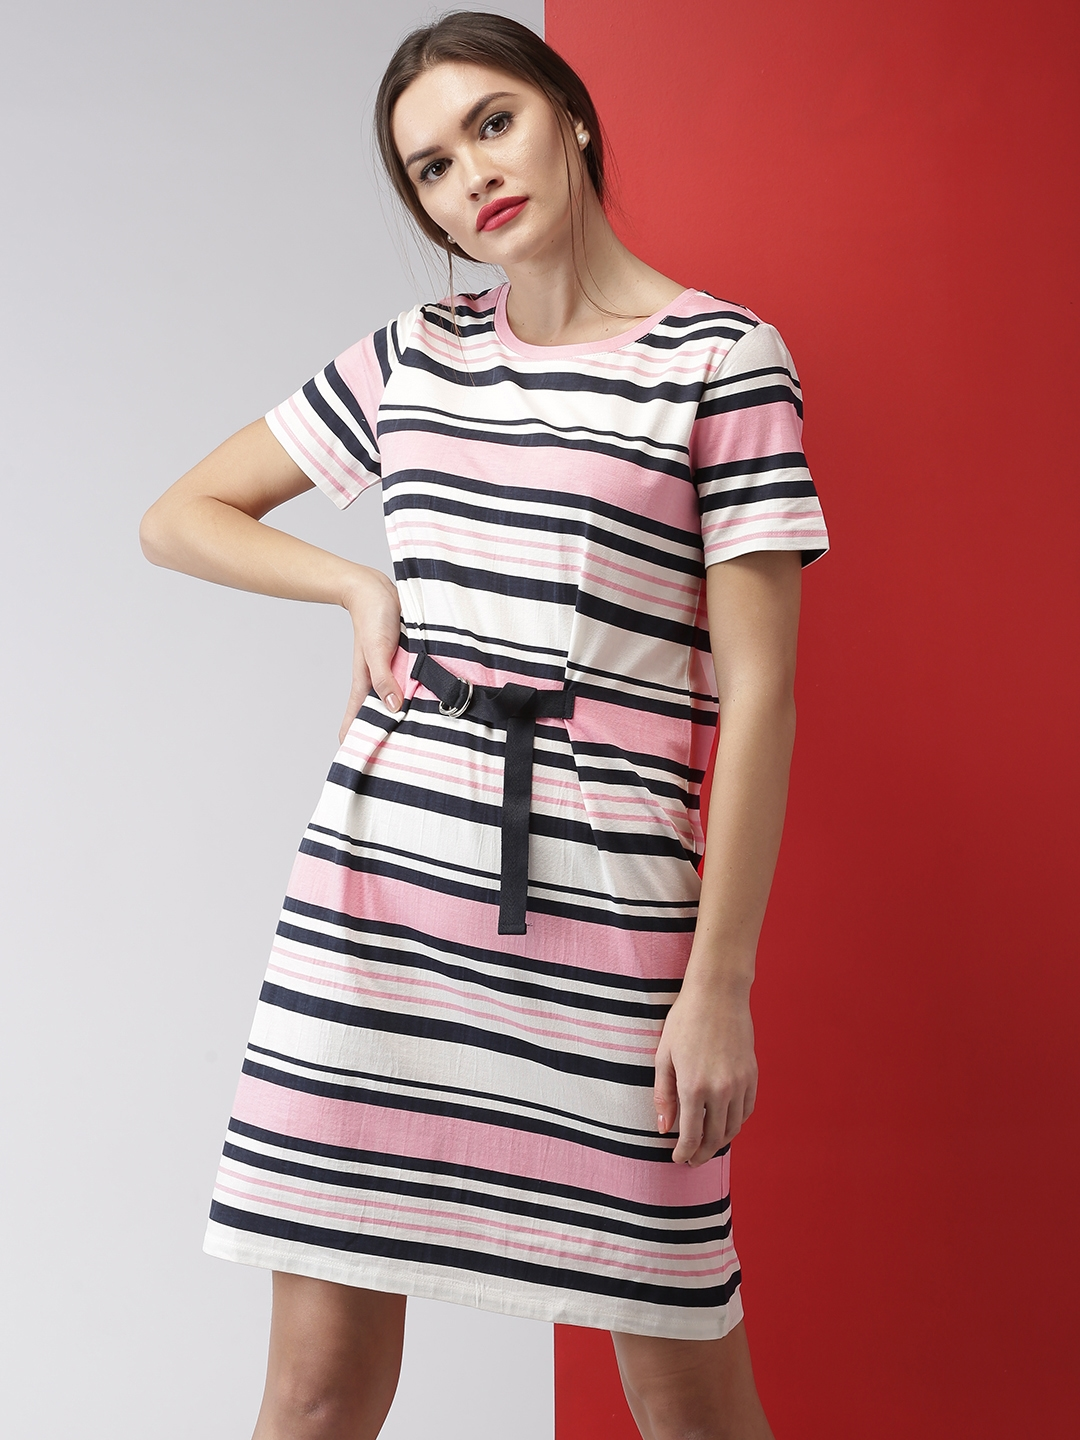 5fa356eaad3d Buy Mast & Harbour Women Pink & White Striped T Shirt Dress ...